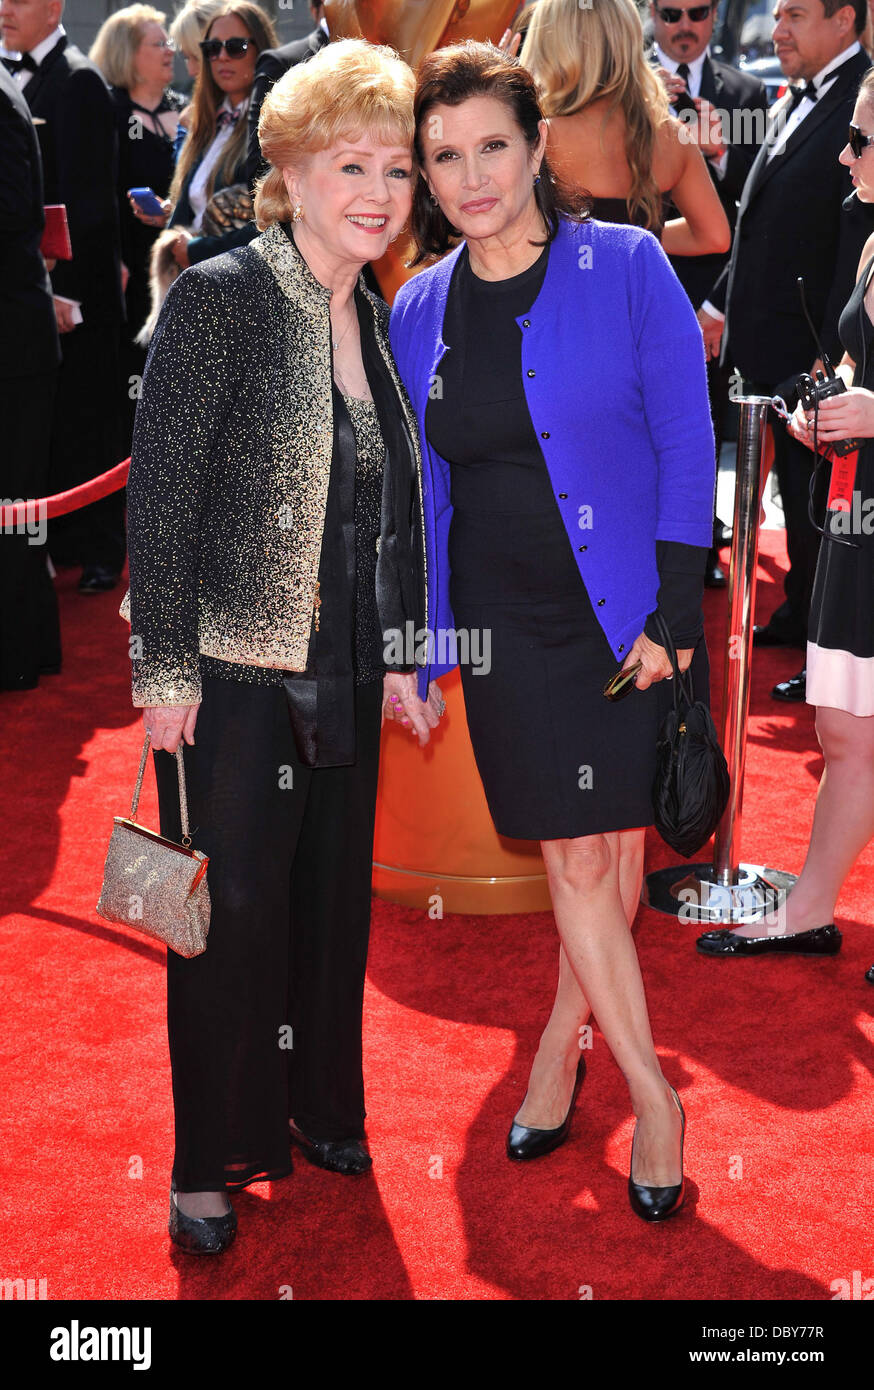 Debbie Reynolds and Carrie Fisher  2011 Primetime Creative Arts Emmy Awards - arrivals Held at The Nokia Theatre - Stock Image